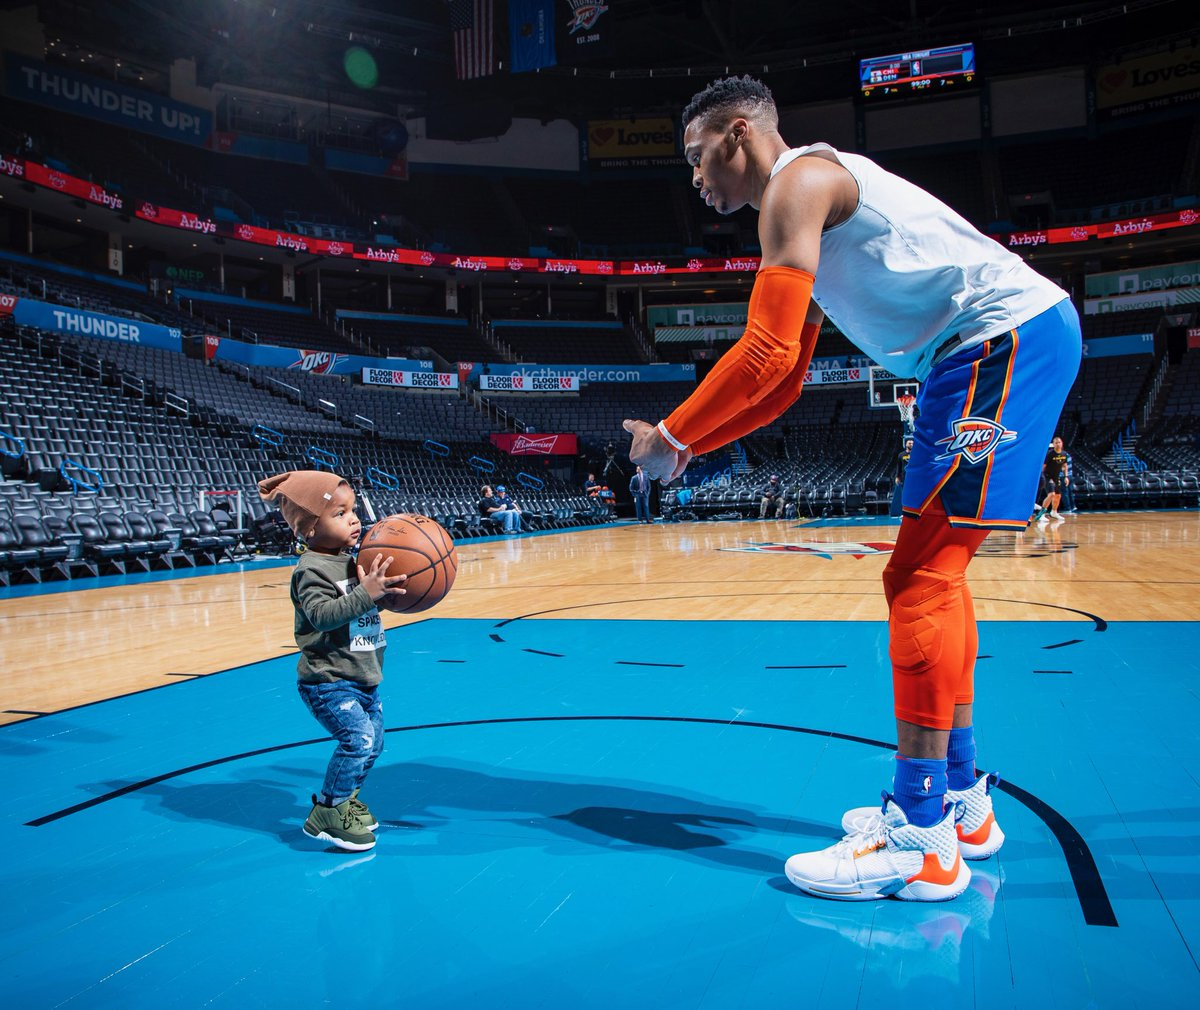 Let's Collectively Melt Over This Video of an NBA Player Warming Up With His 1-Year-Old Son